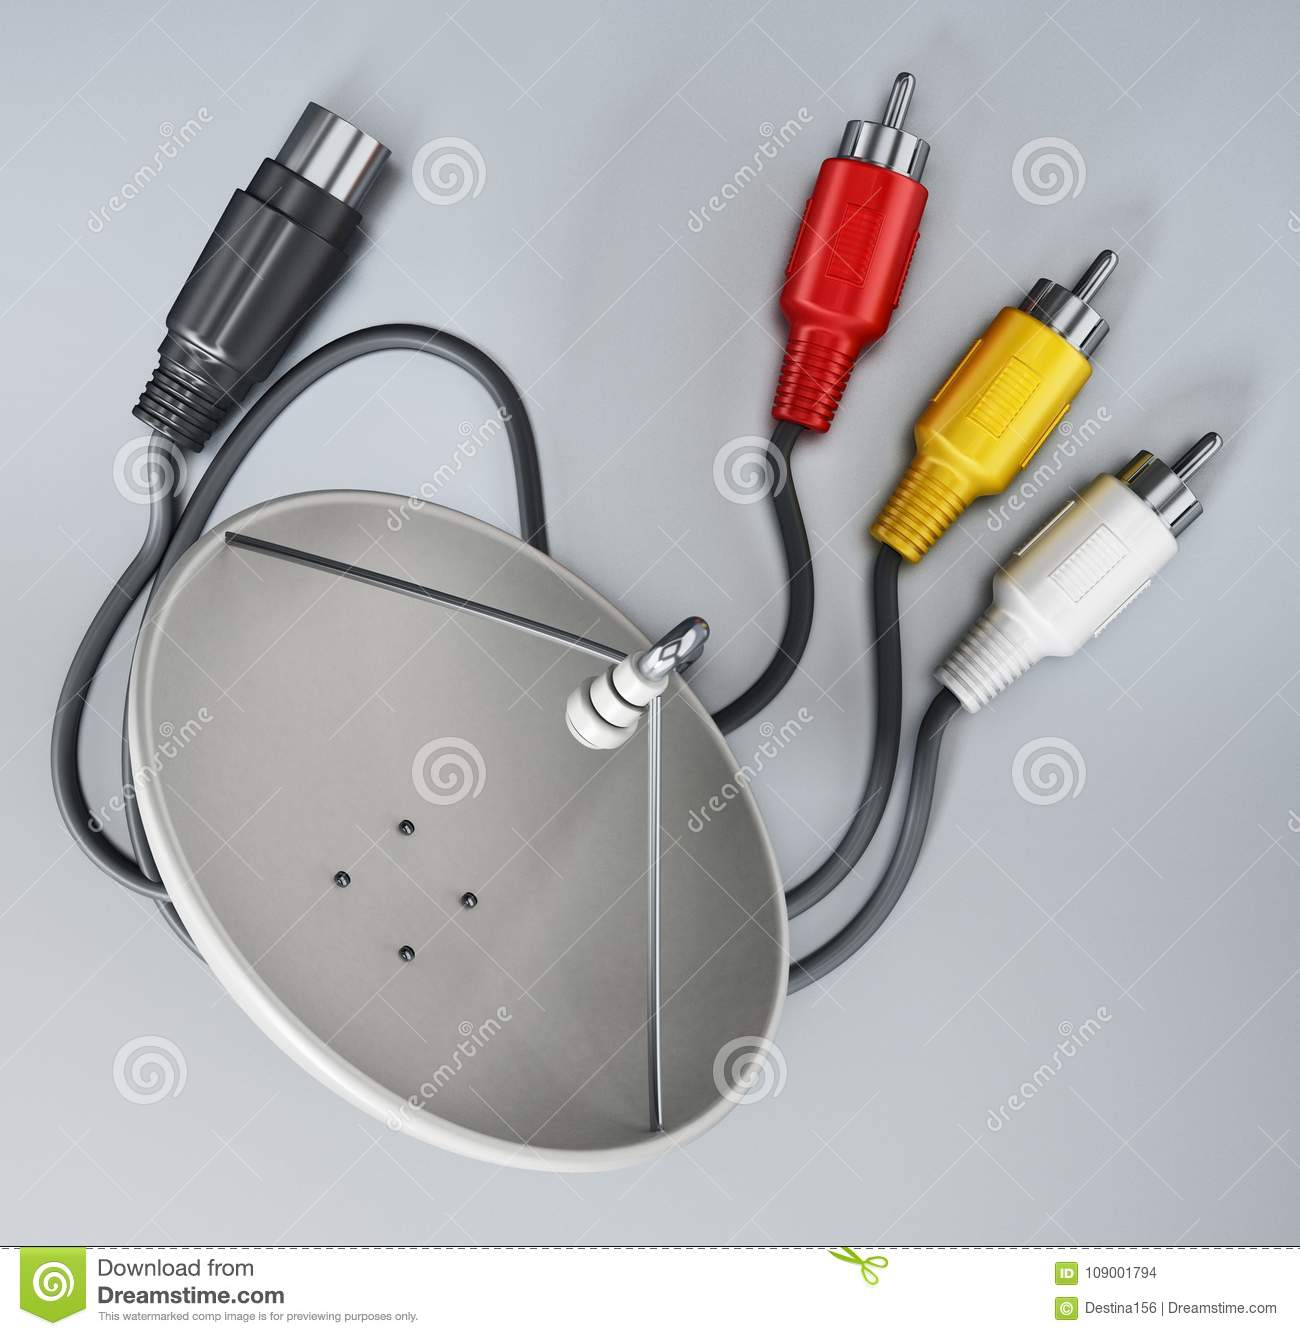 Satellite Dish And S Video Cables Isolated On White Background 3d Wiring Download Illustration Stock